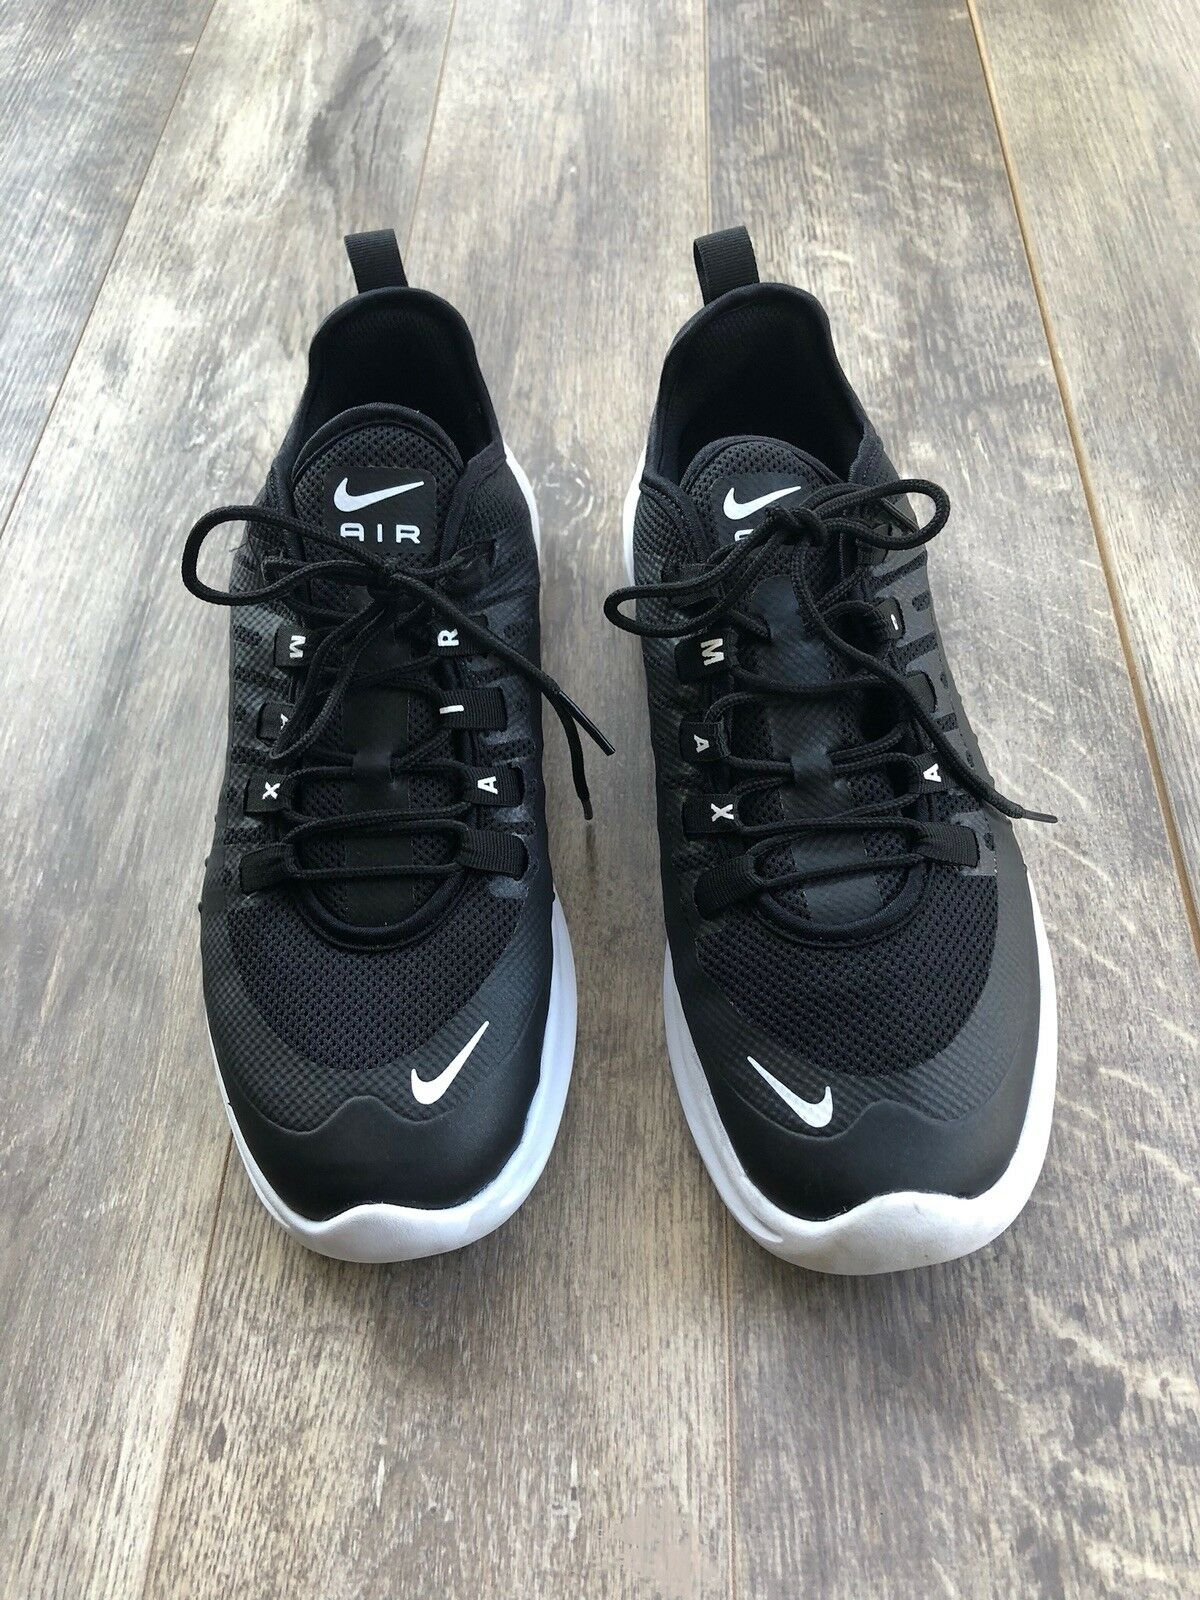 Men's Nike Air Max Axis Running shoes Black White Size 8.5 AA2146-003